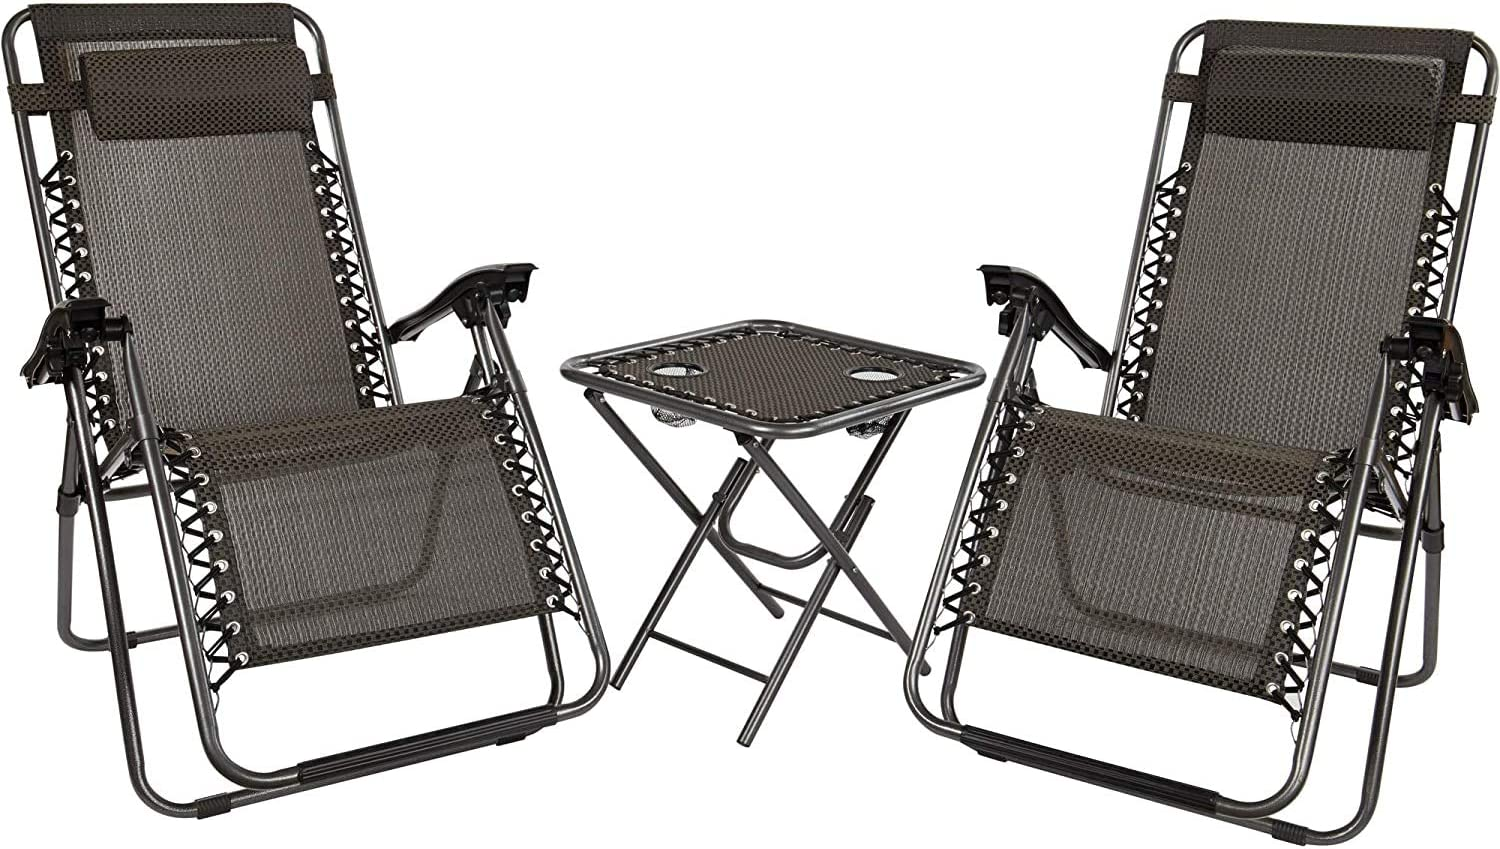 JTF Mega Discount Warehouse Bistro Table and Multi Position Relaxer Chairs  Set